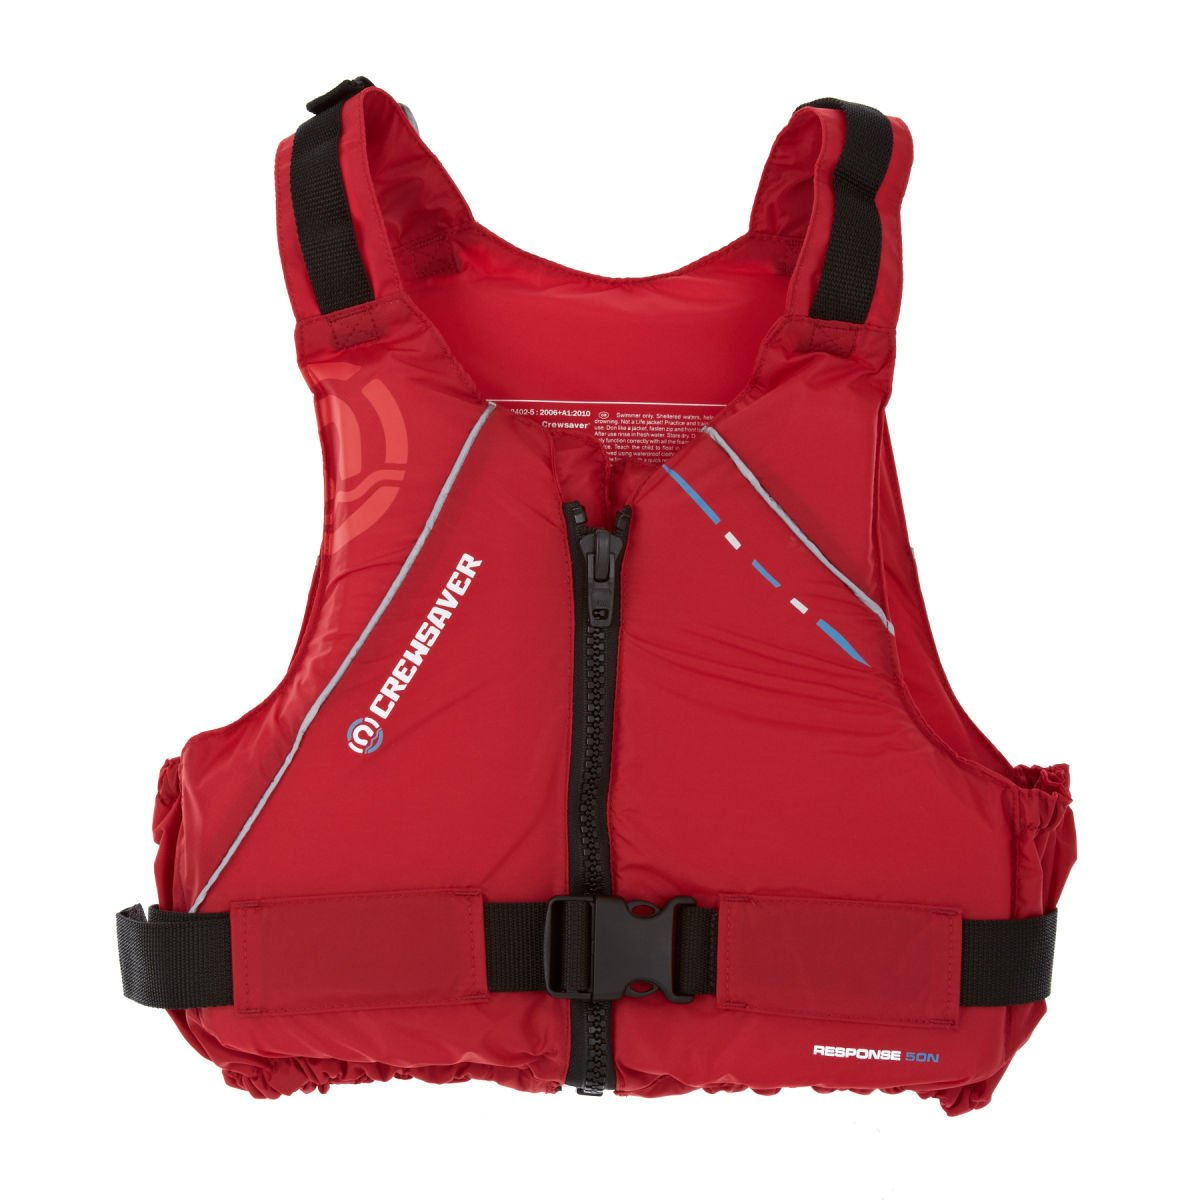 Crewsaver Response Buoyancy Aid in RED 2403